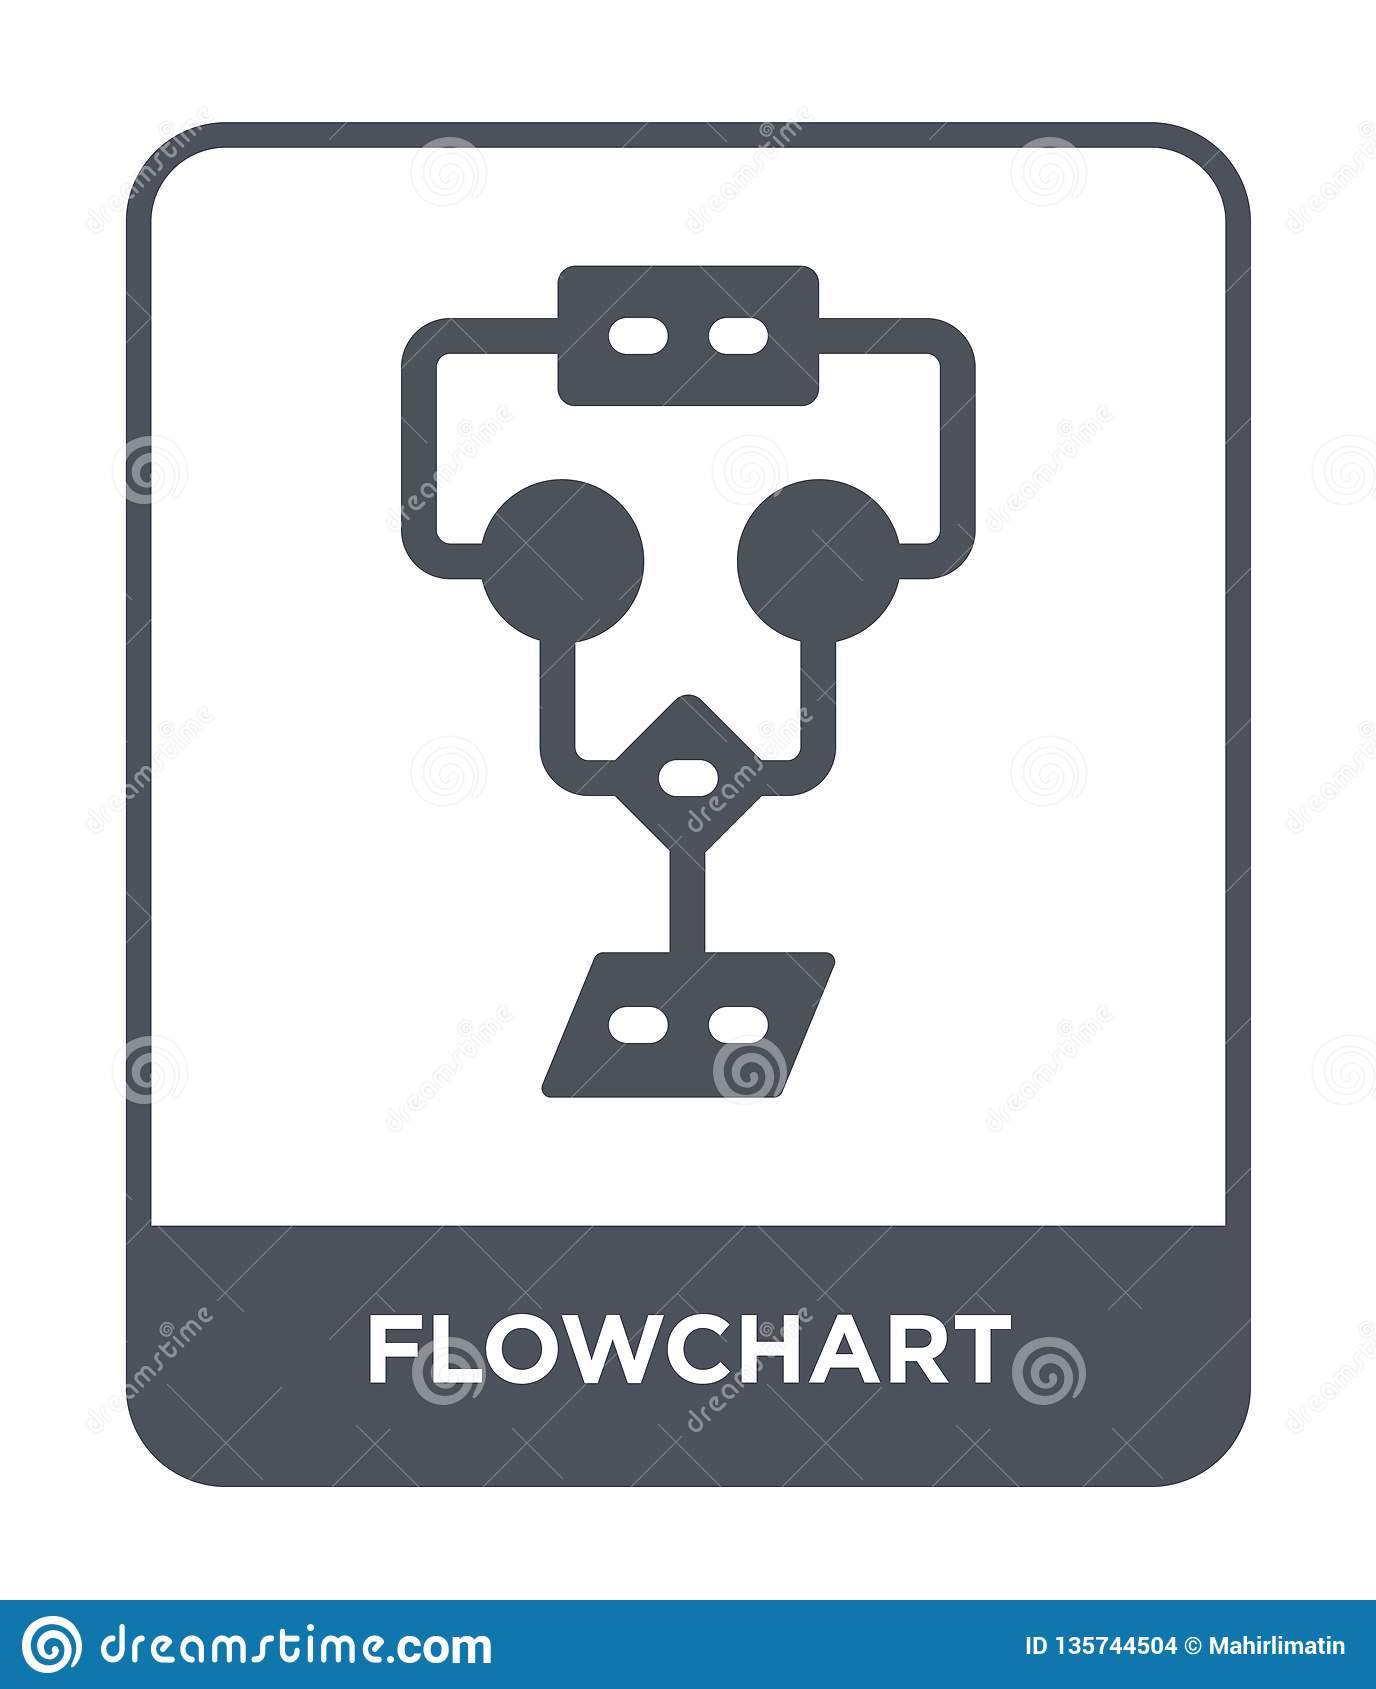 flowchart icon in trendy design style. flowchart icon isolated on white background. flowchart vector icon simple and modern flat